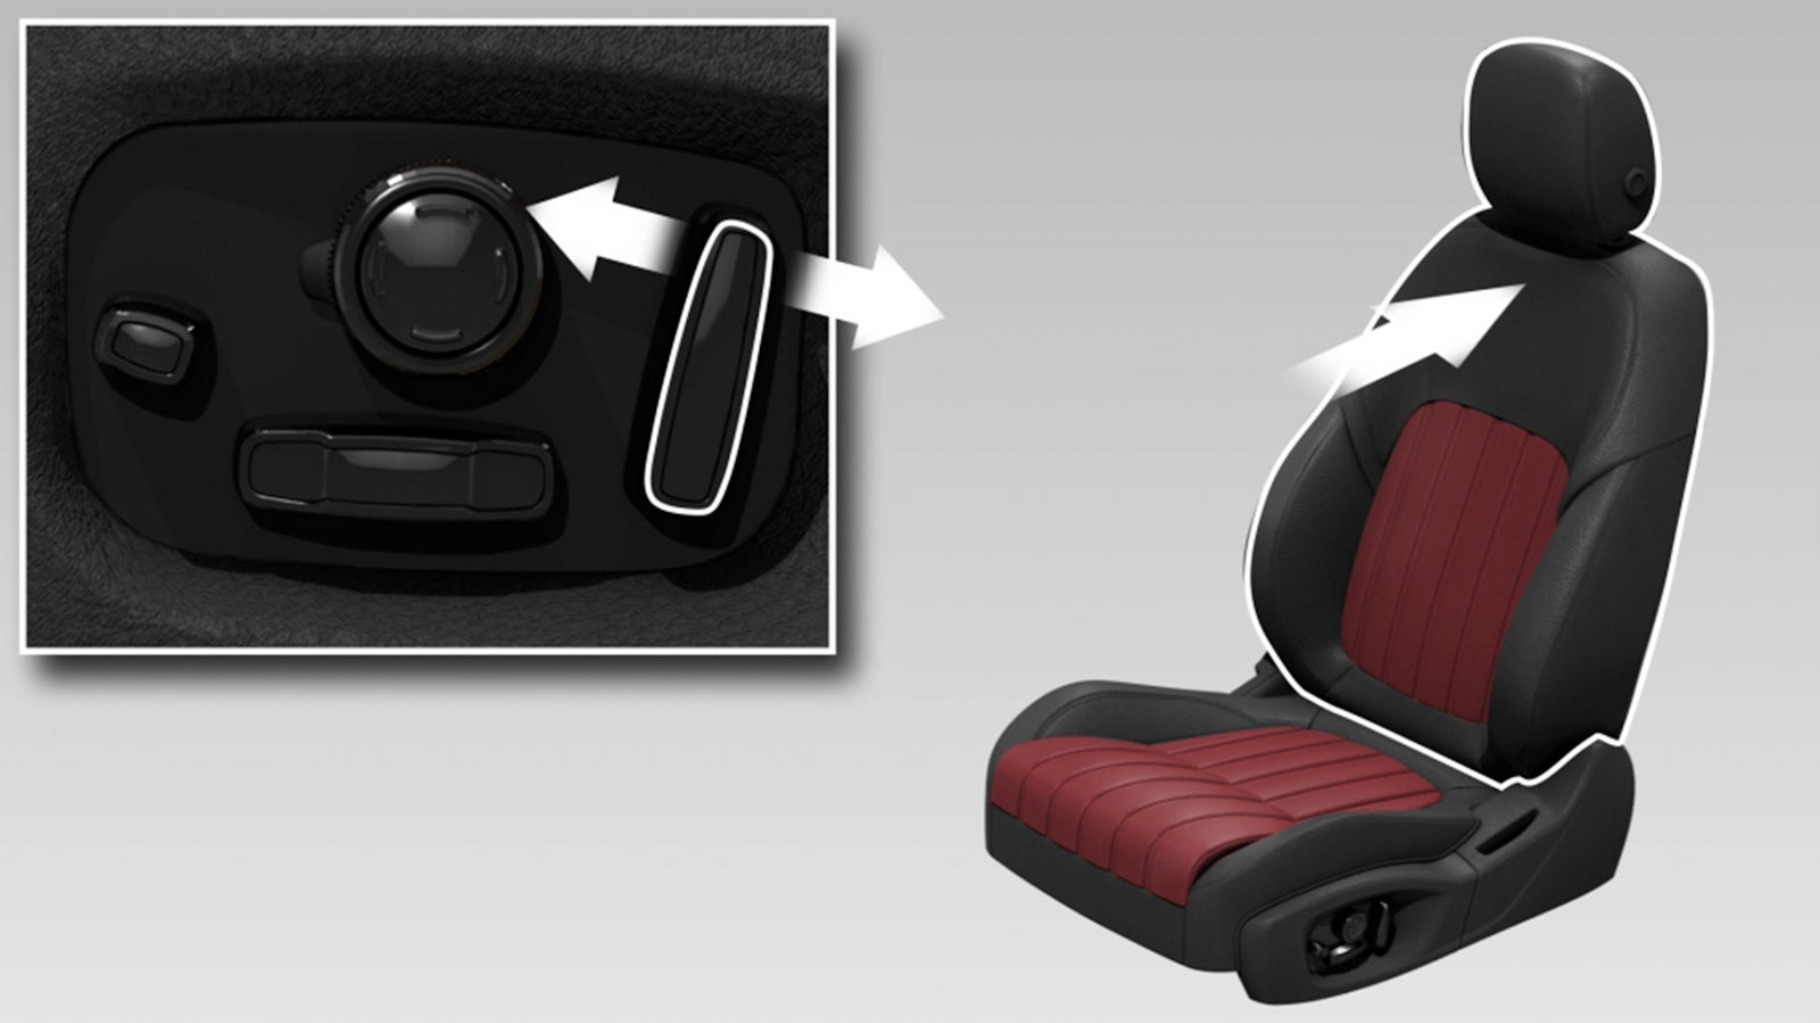 IMG_WRAPPER_Youtube_Seat-Functions_Device-Desktop_1600x900.jpg